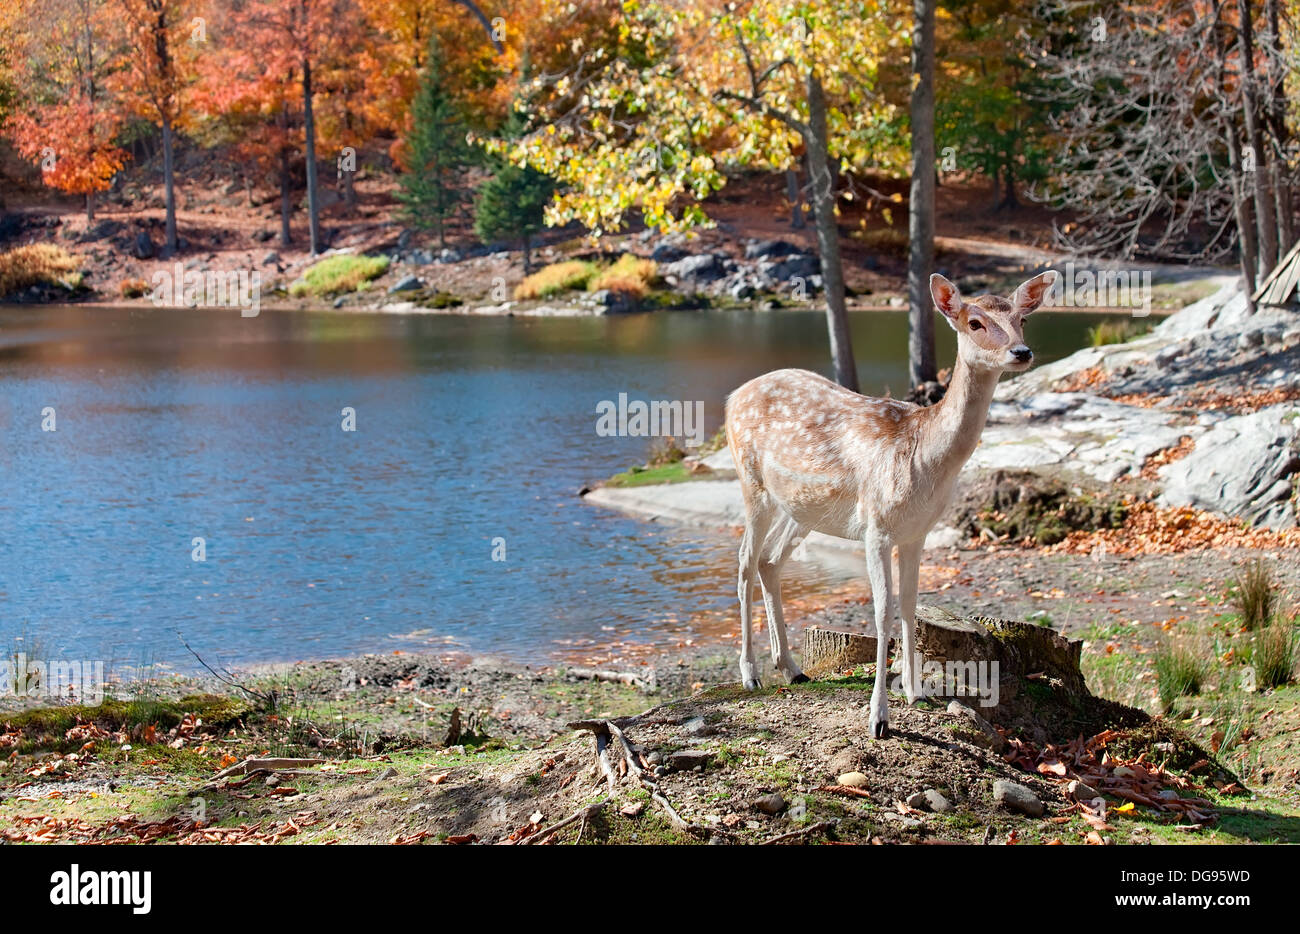 Fallow deer standing by the lake on a fall day. - Stock Image